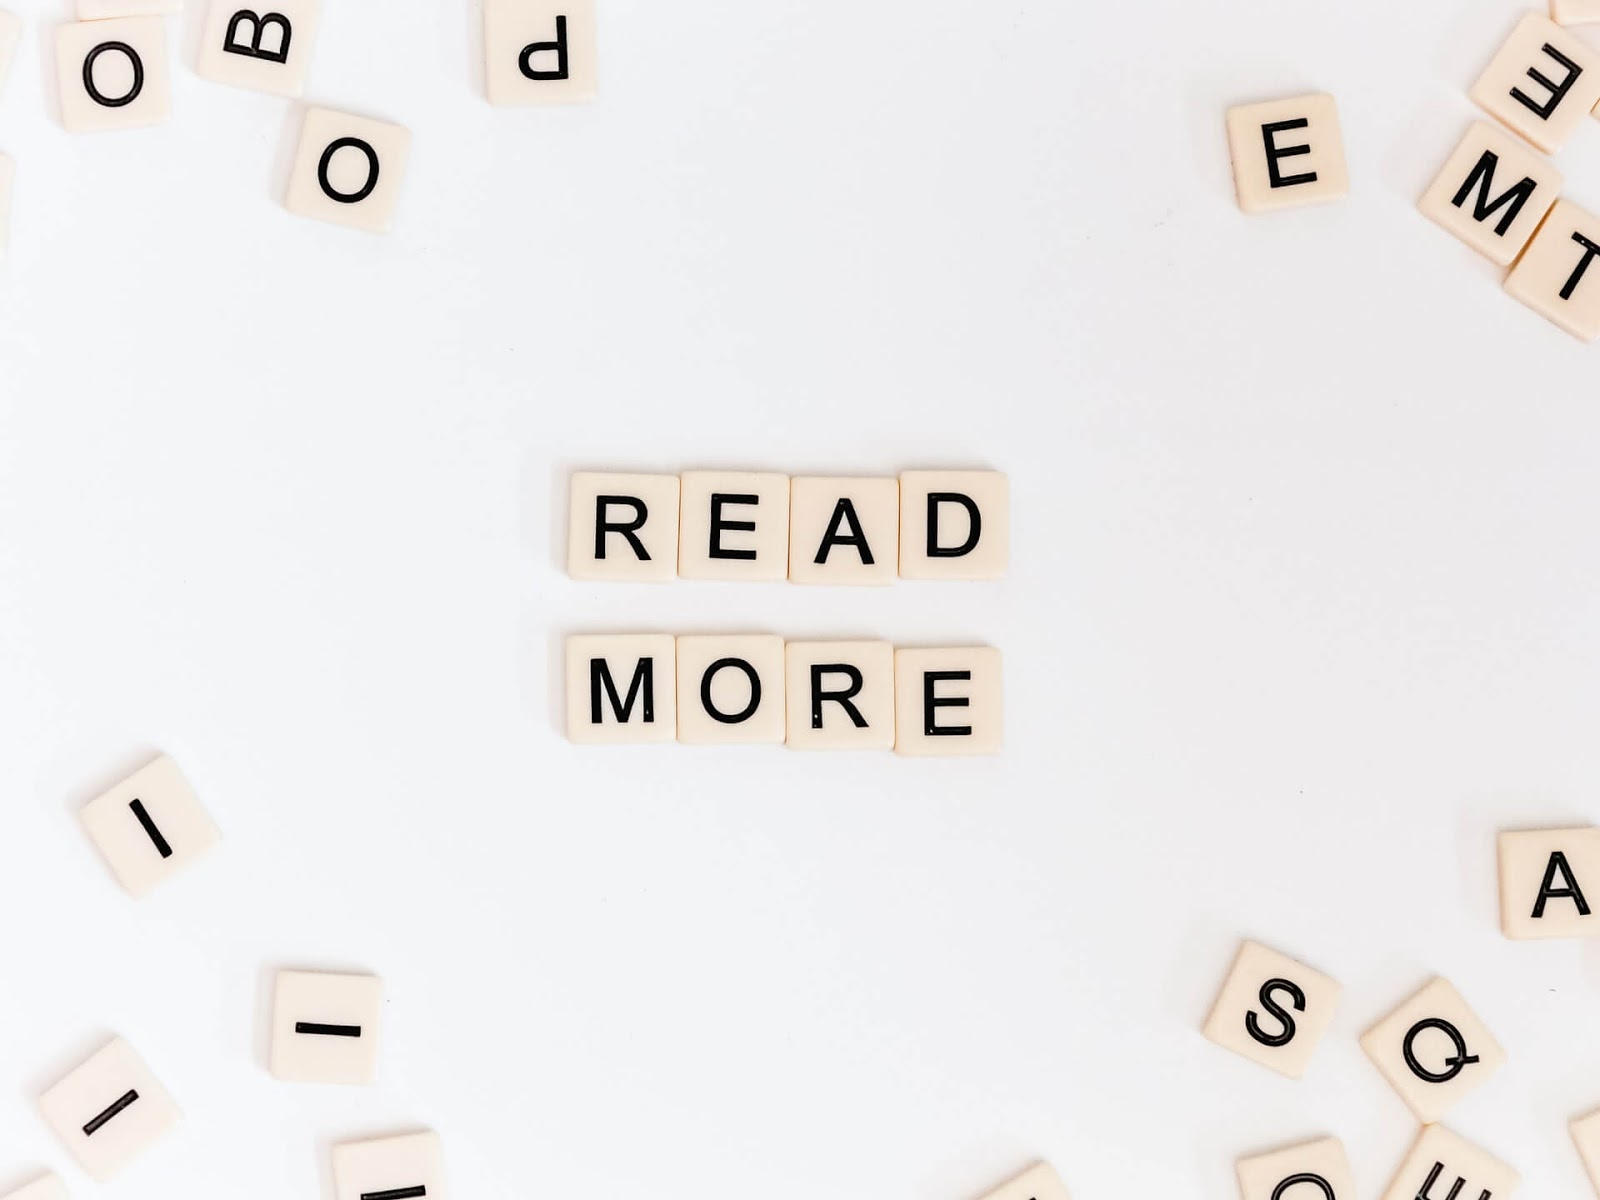 Useful Tips and Tricks To Help You Win Your Next Scrabble Game